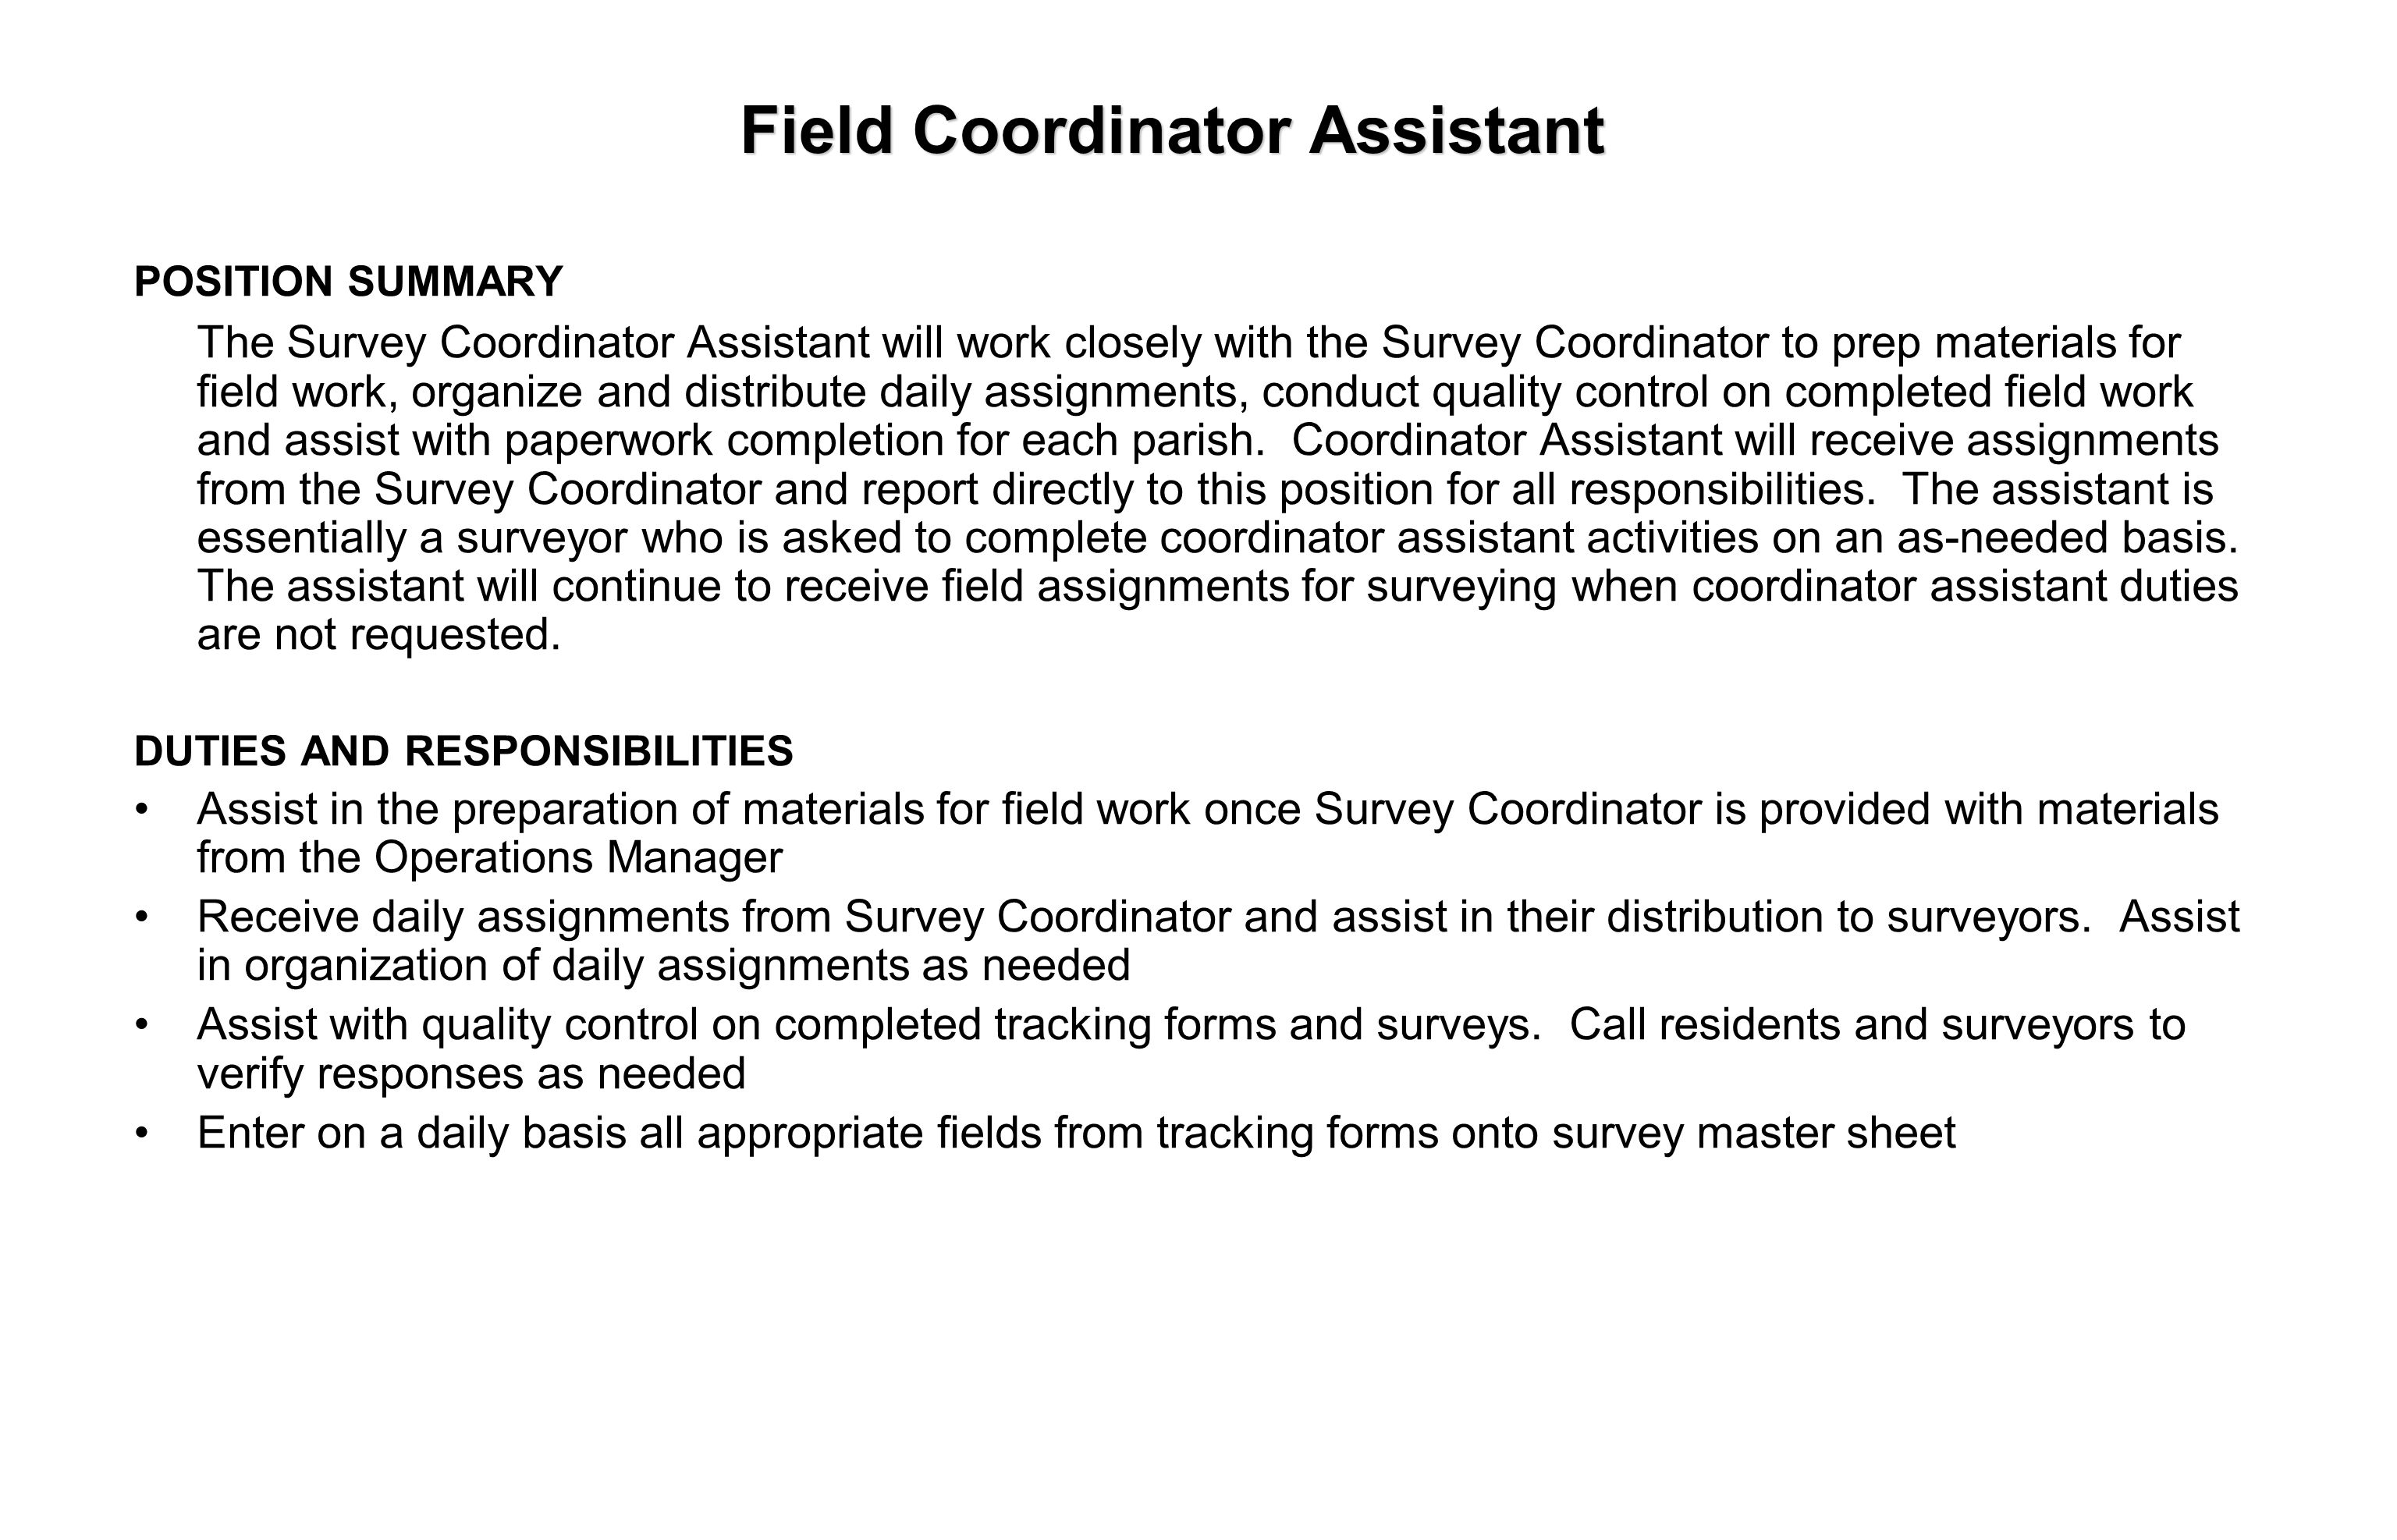 Field Coordinator Assistant POSITION SUMMARY The Survey Coordinator Assistant will work closely with the Survey Coordinator to prep materials for field work, organize and distribute daily assignments, conduct quality control on completed field work and assist with paperwork completion for each parish.